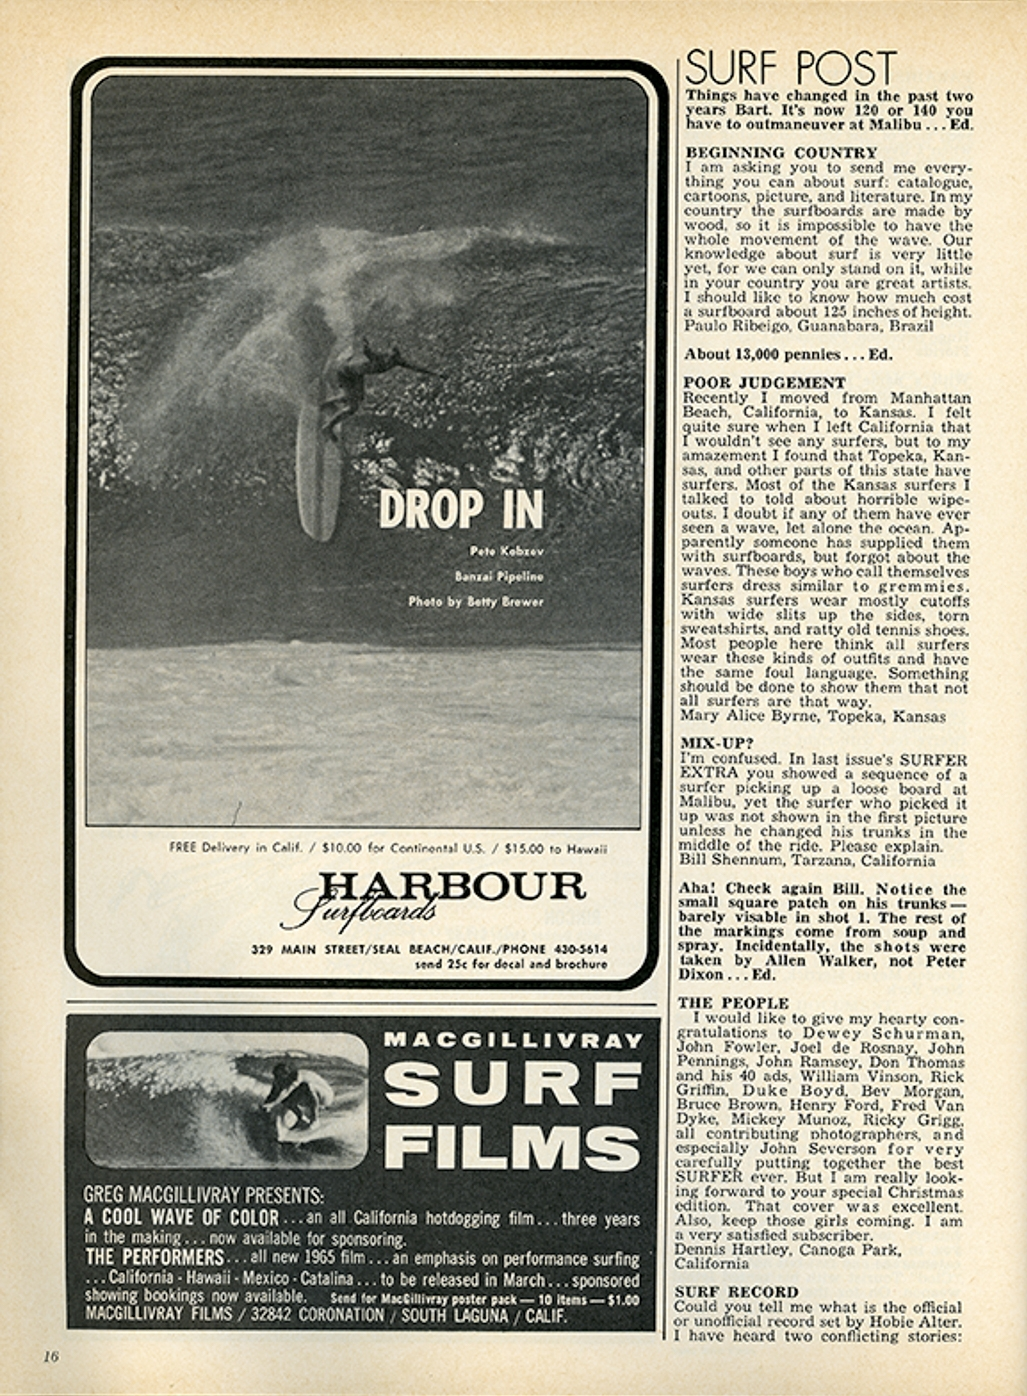 SURFER MAG 1964 DEC-JAN VOL6